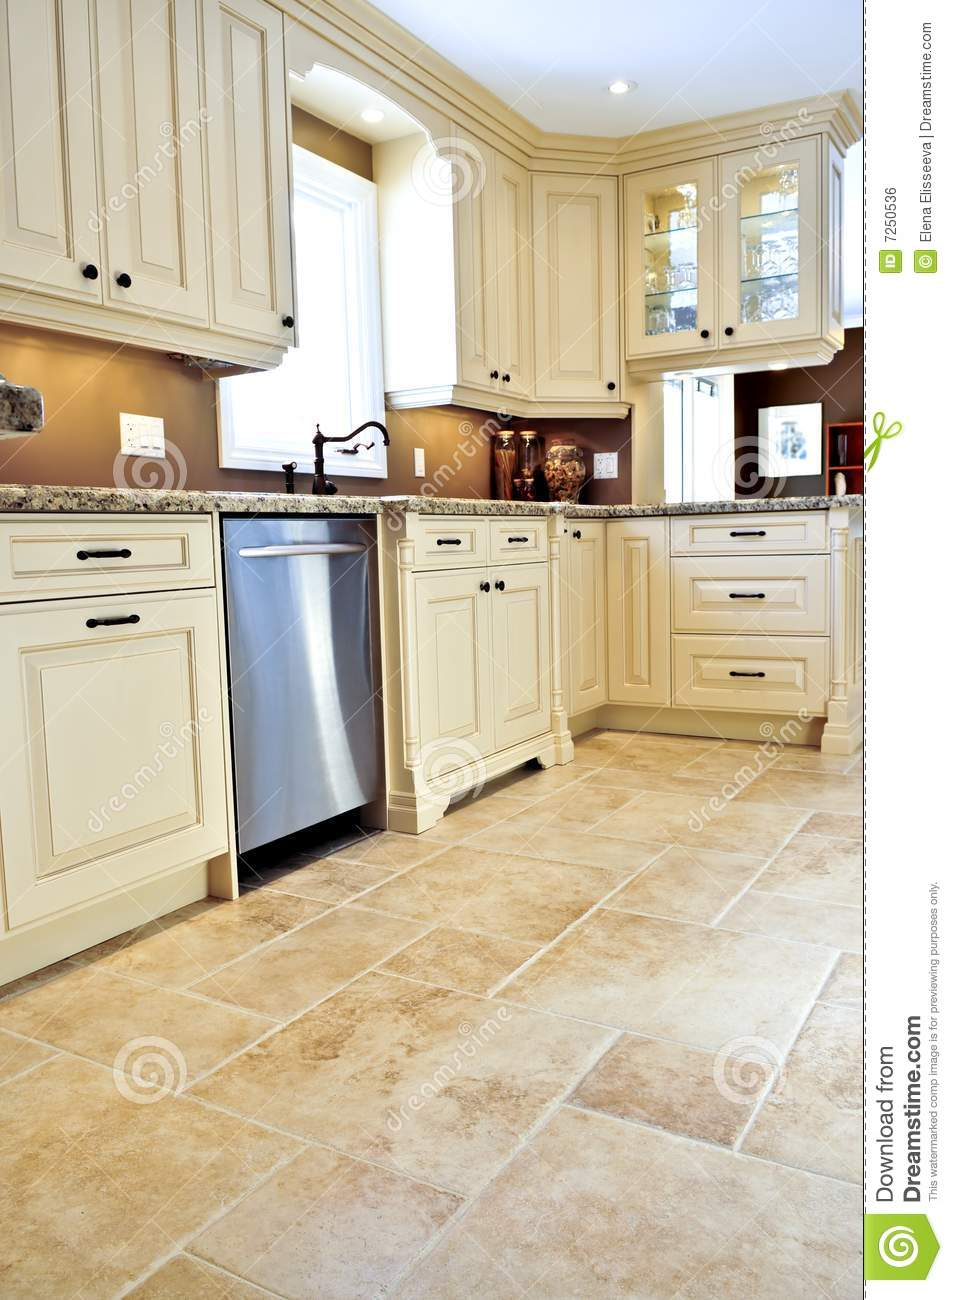 Tile Floor In Modern Kitchen Stock Photo Image 7250536